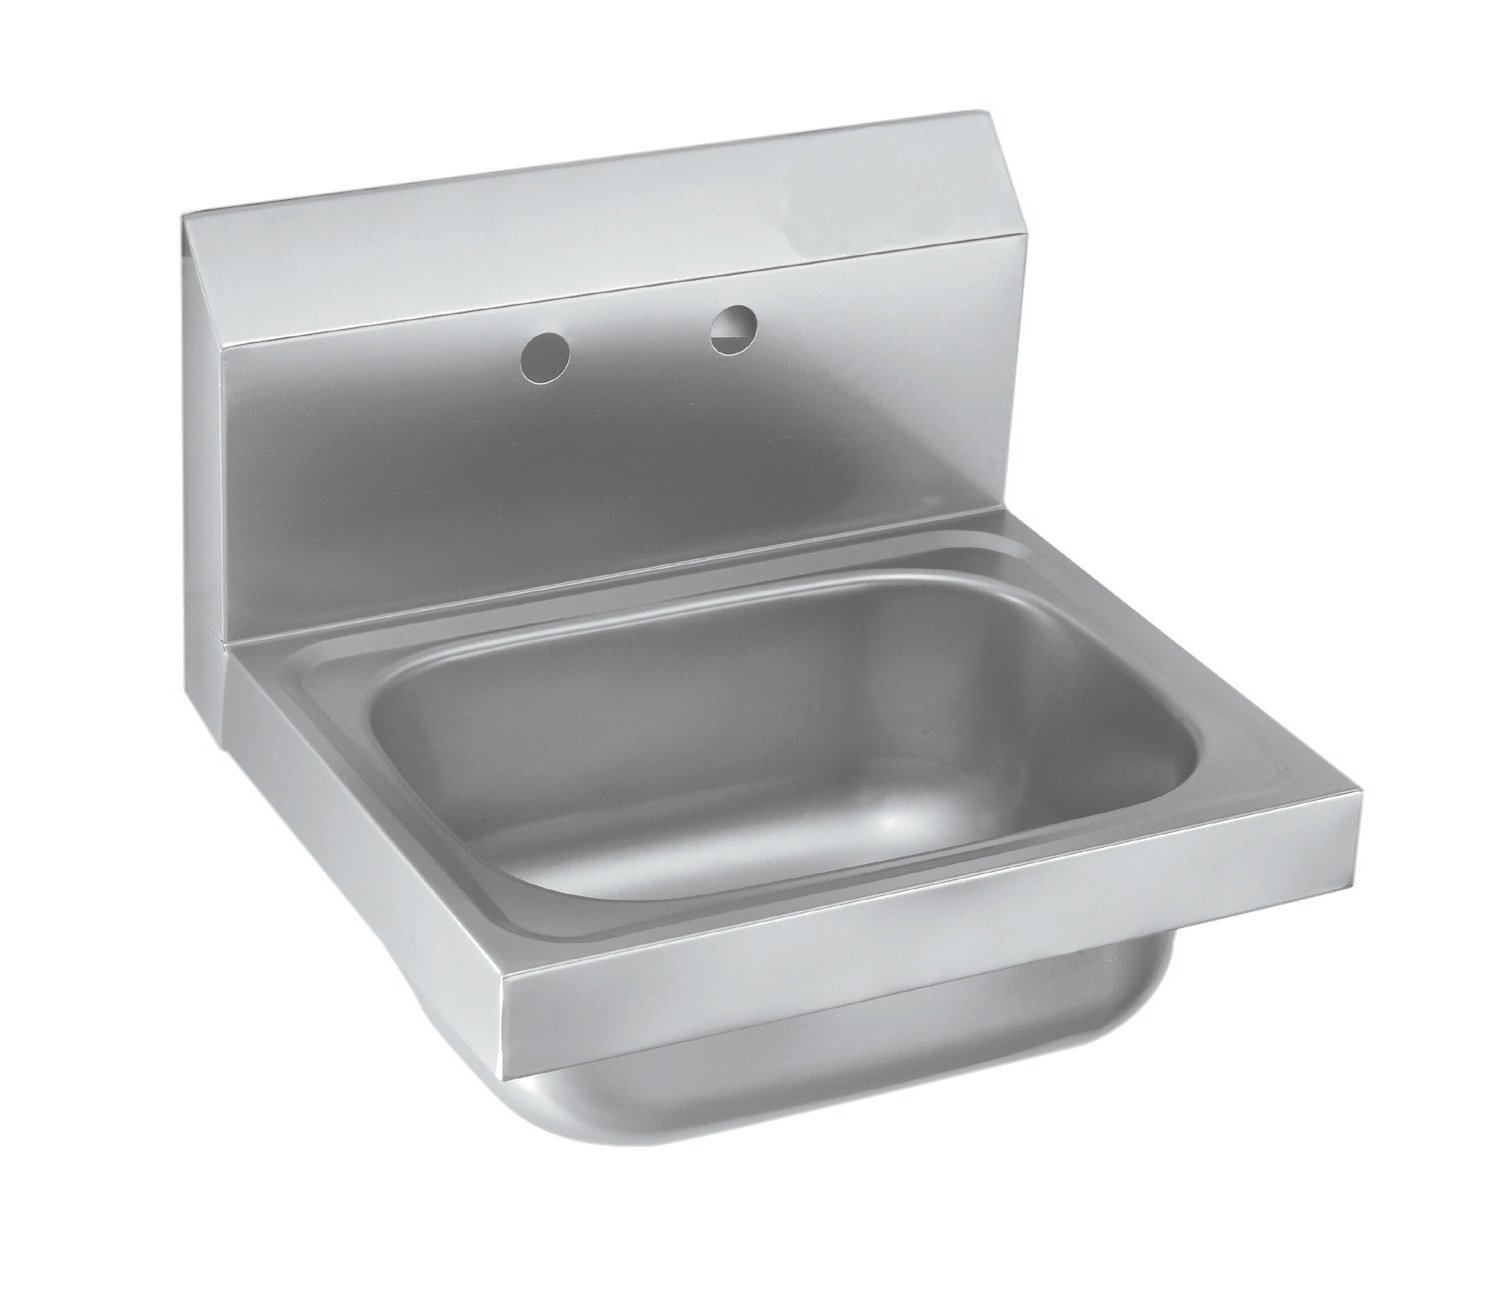 EQ Kitchen Line Stainless Steel Commercial Compartment Sink, 12'' L x 16'' W x 13'' H